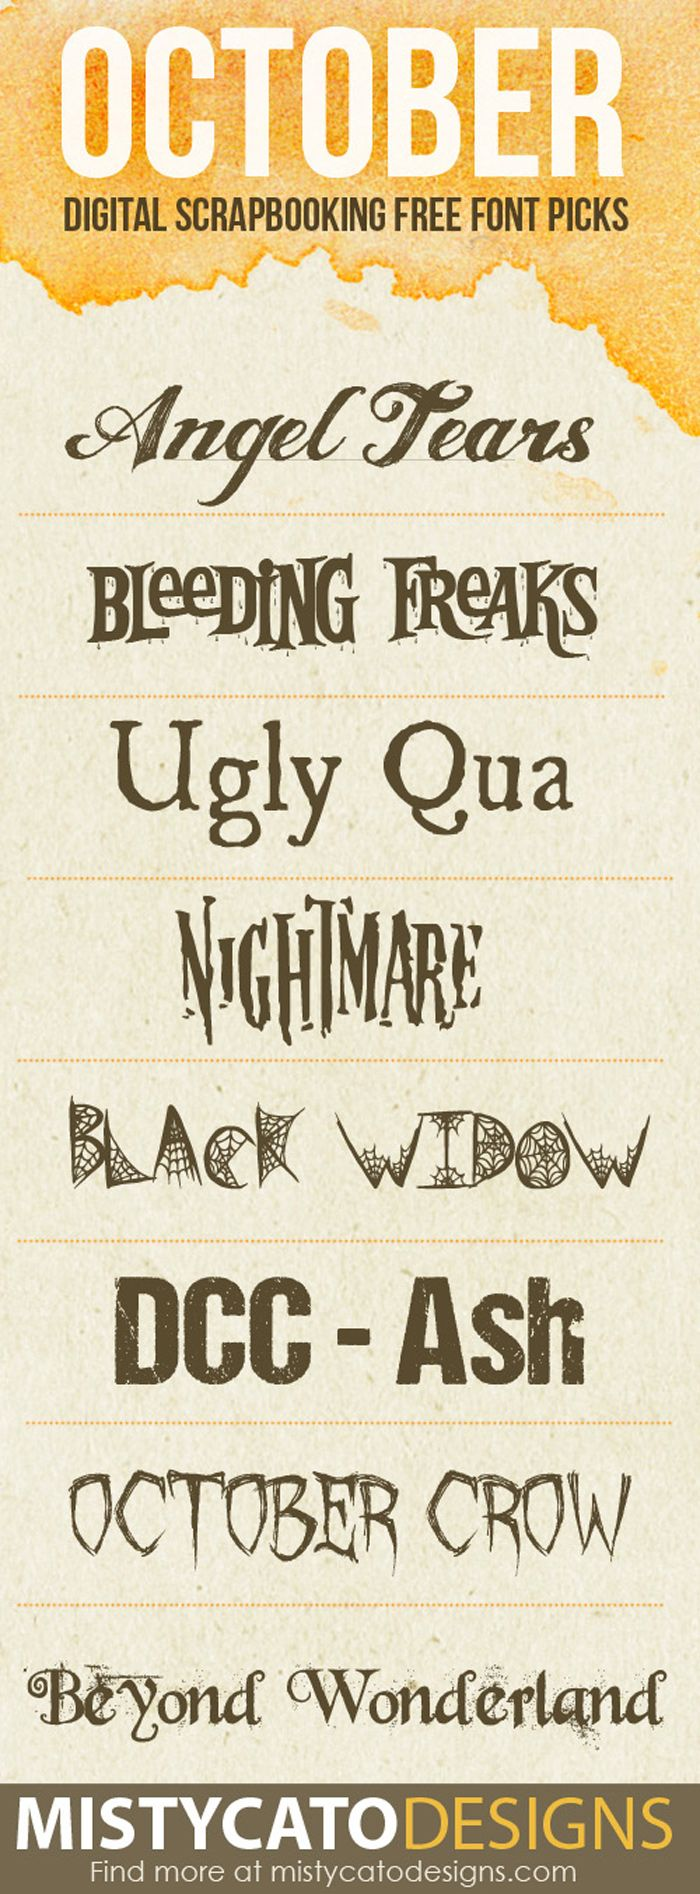 Best 10+ Fall fonts ideas on Pinterest | Summer font, Holiday ...